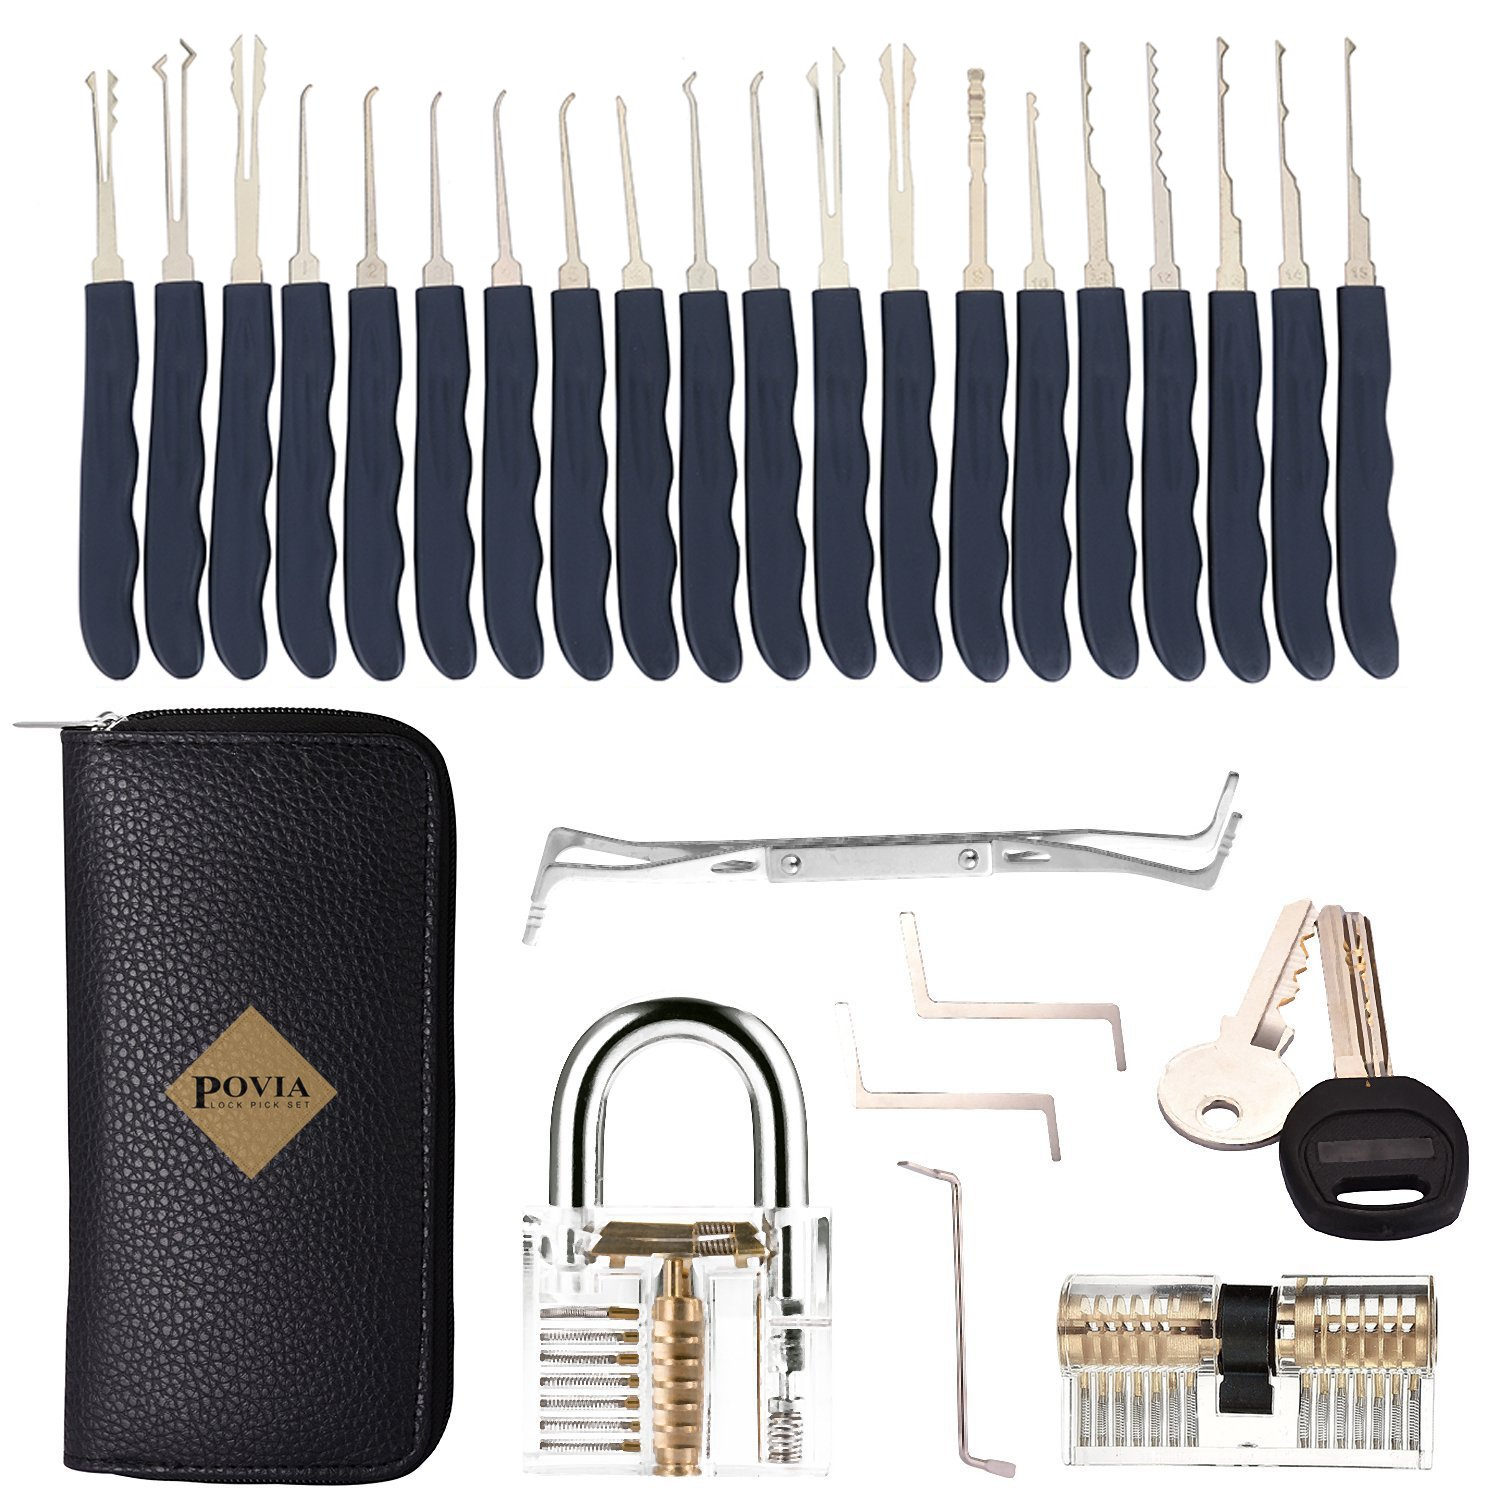 POVIA Lock Pick Set – 24 Pieces Lock Picking Tools with 2 Clear Training Locks for Beginners and Pro Locksmiths - A Transparent Practice Padlock and a Transparent Double Cylinder Lock – Carry Case